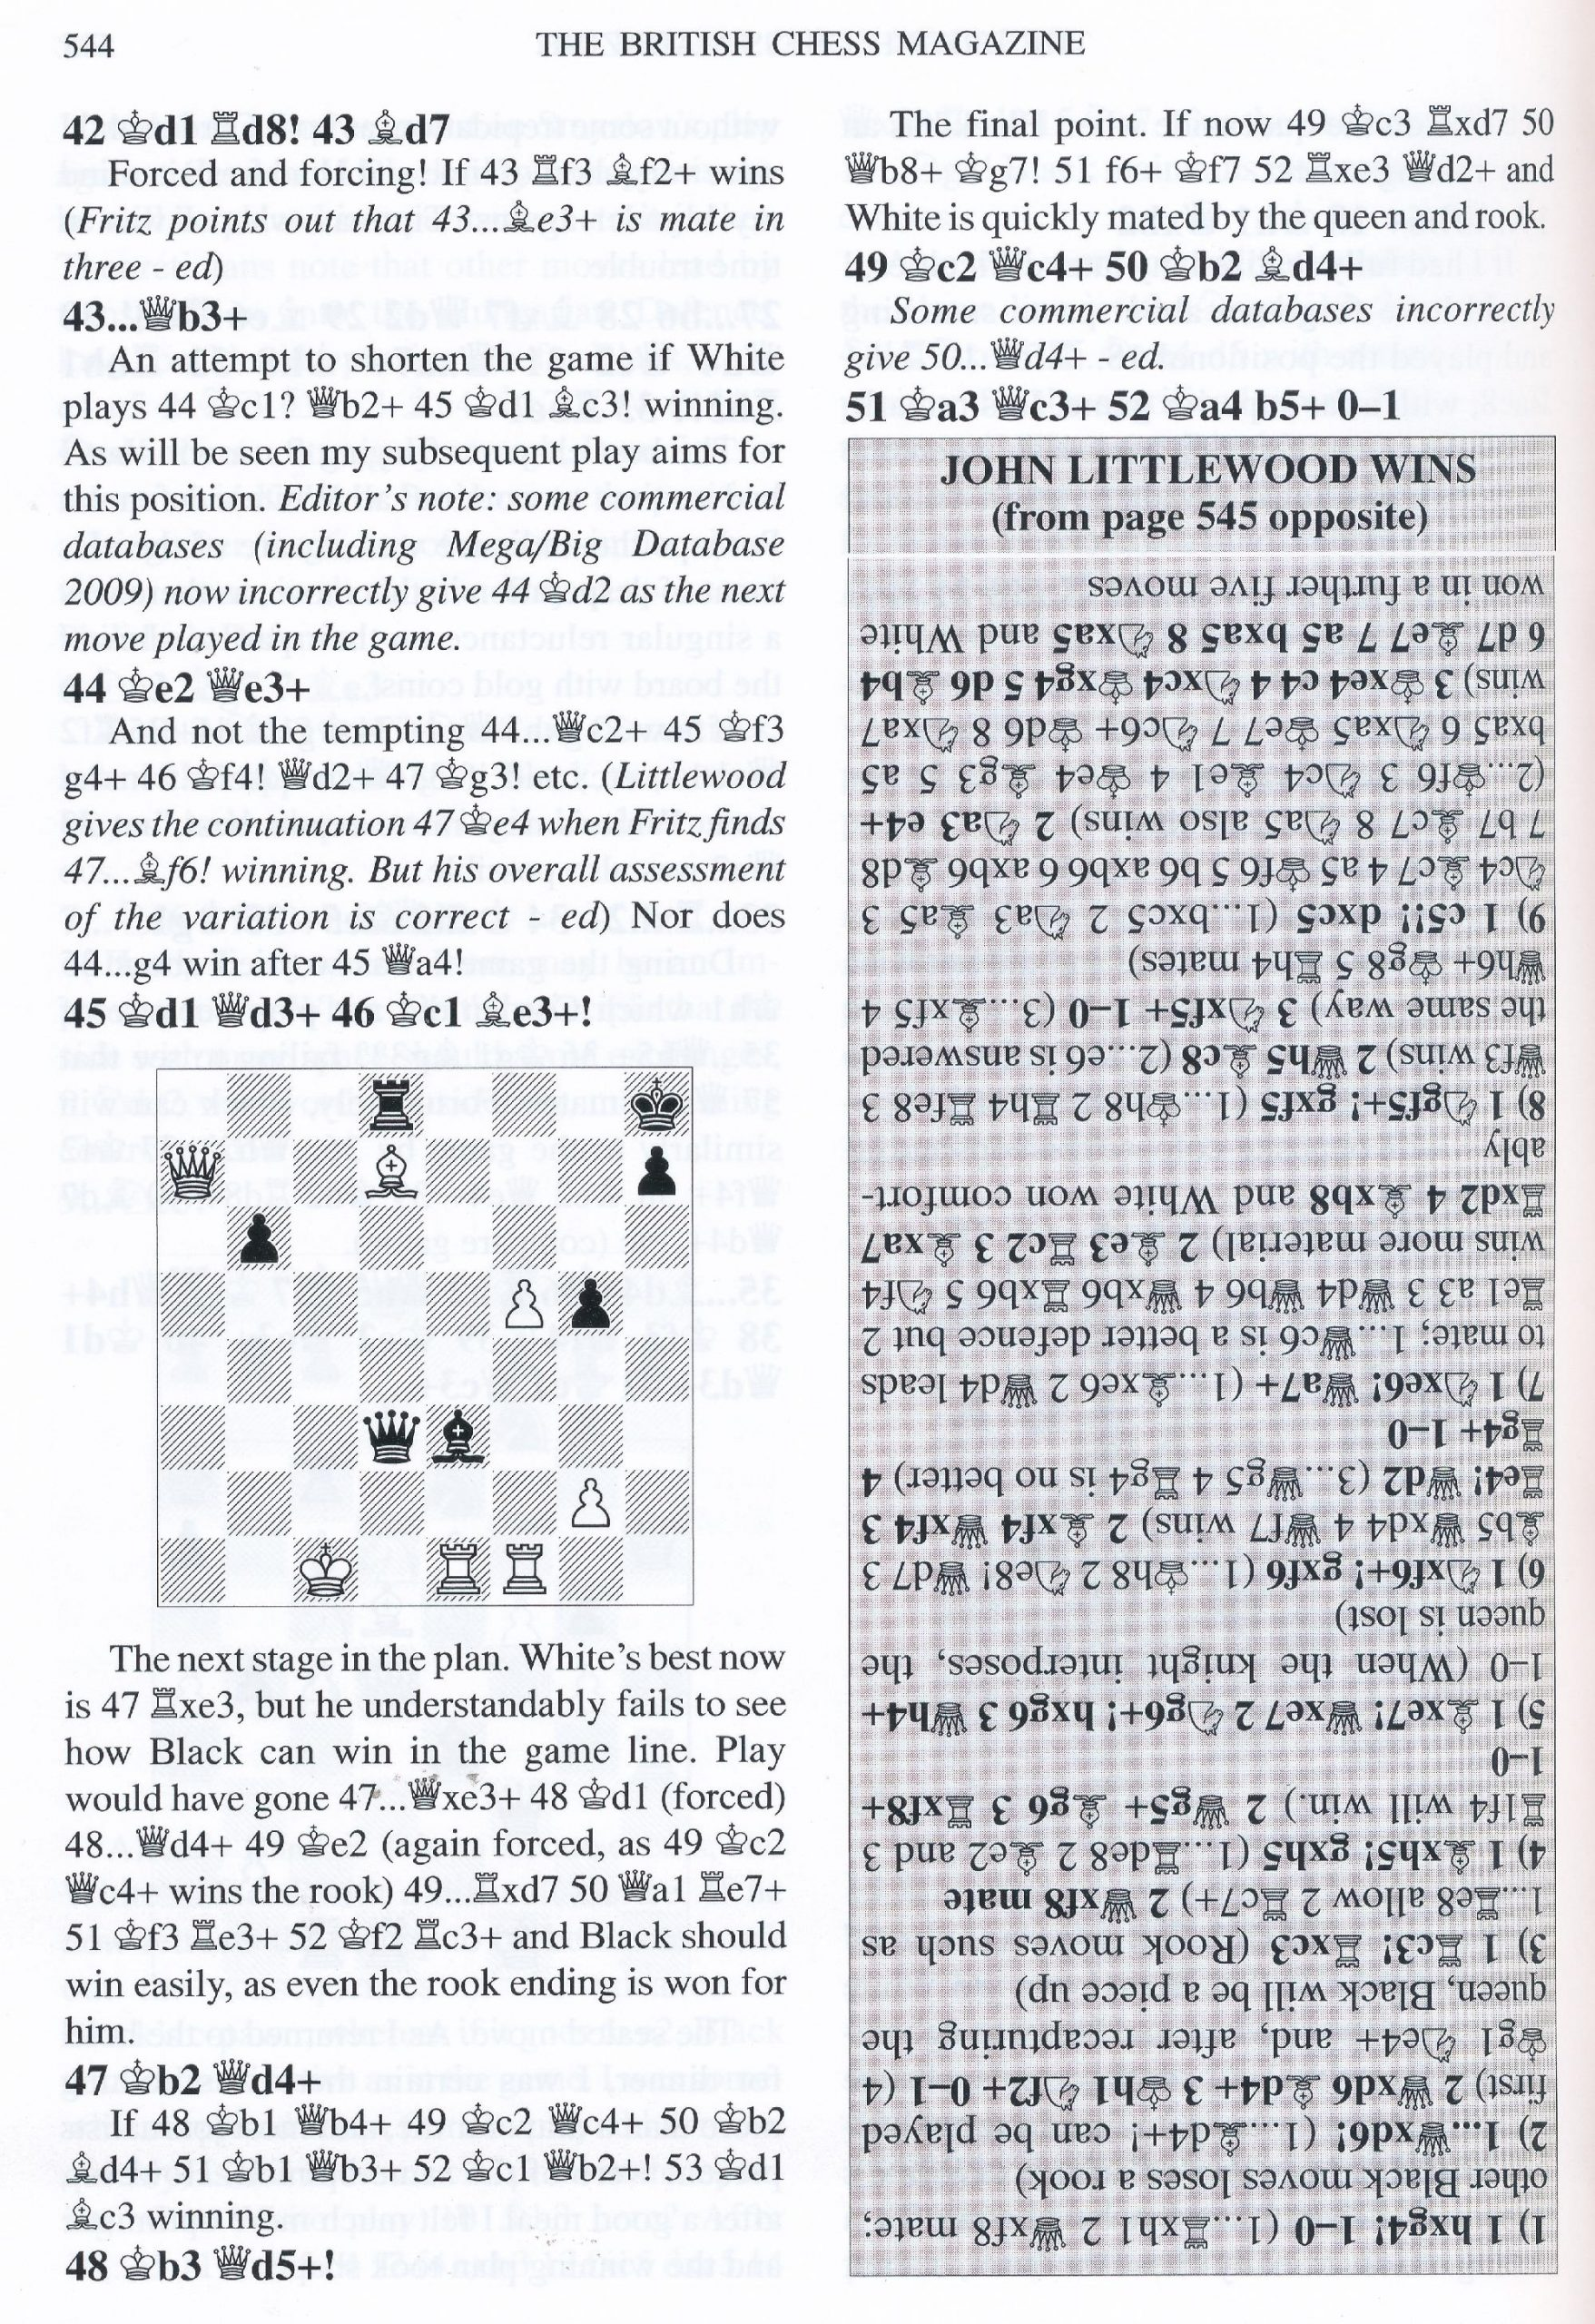 British Chess Magazine, Volume CXXIV (129), 2009, Number 10, October, page 544